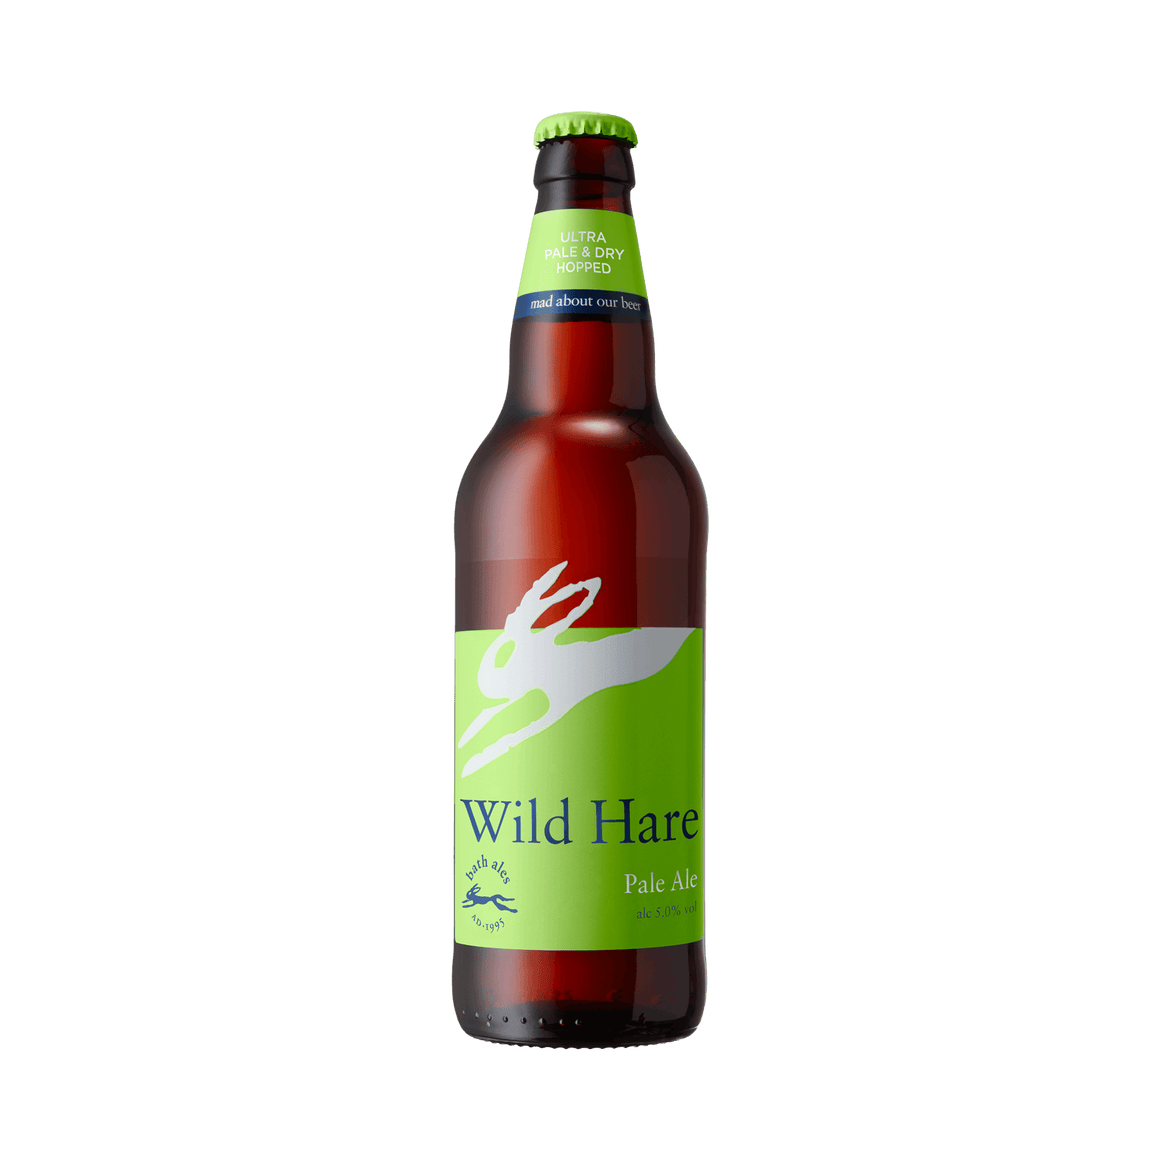 Bath Ales - Wild Hare - Pale Ale - 500ml Bottle